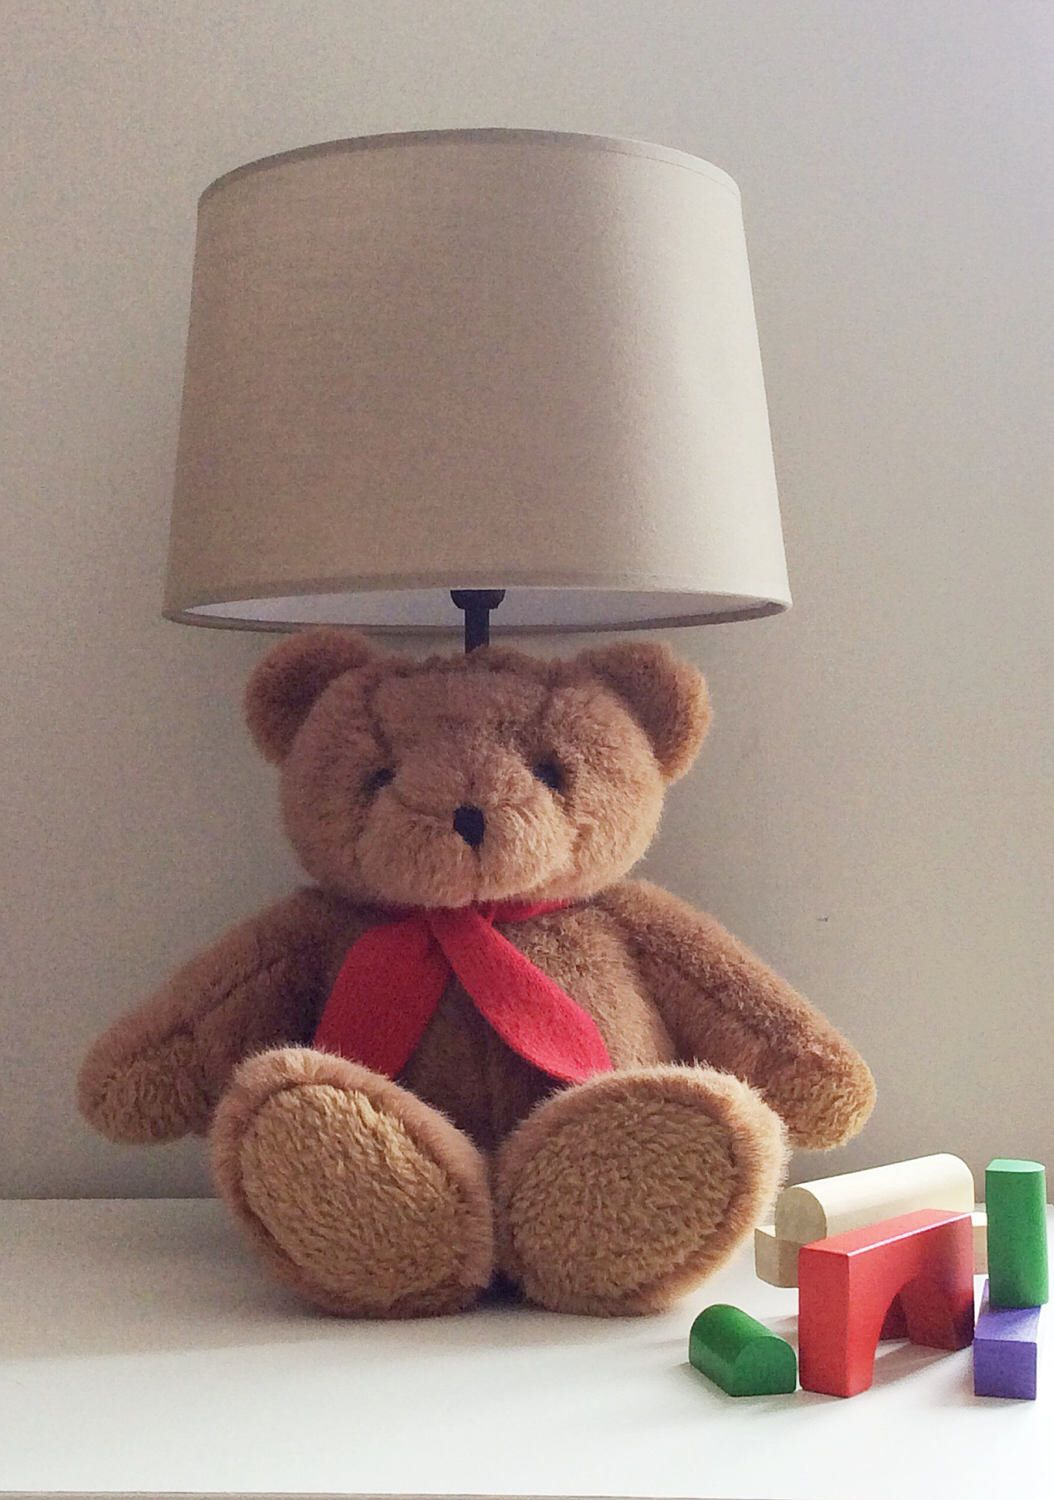 Childrens Bedside Lights Pin By Nest Handpainted On Nesthandpainted Pinterest